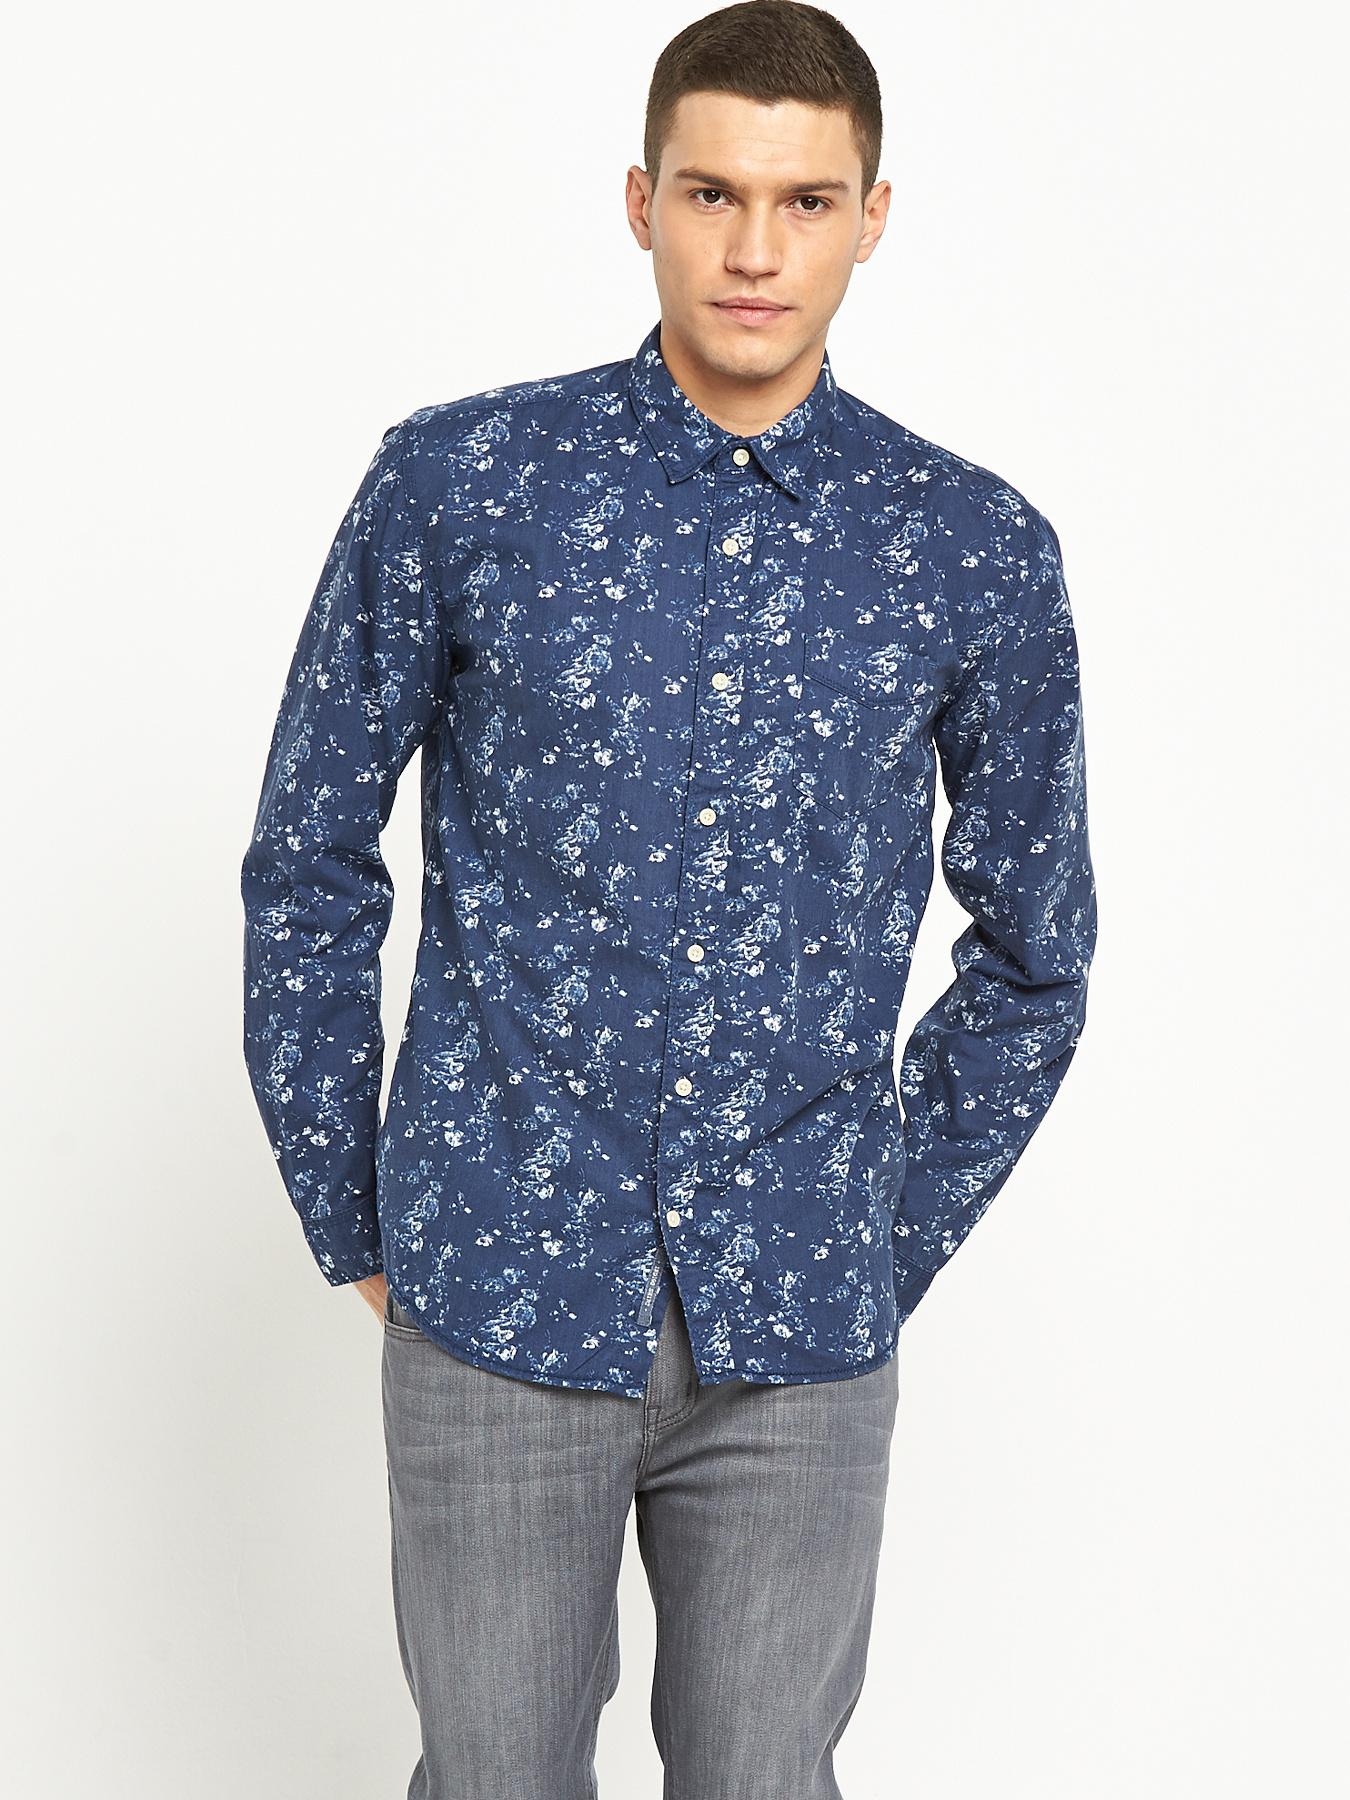 Selected Mens Long Sleeve Shirt - Blue, Blue